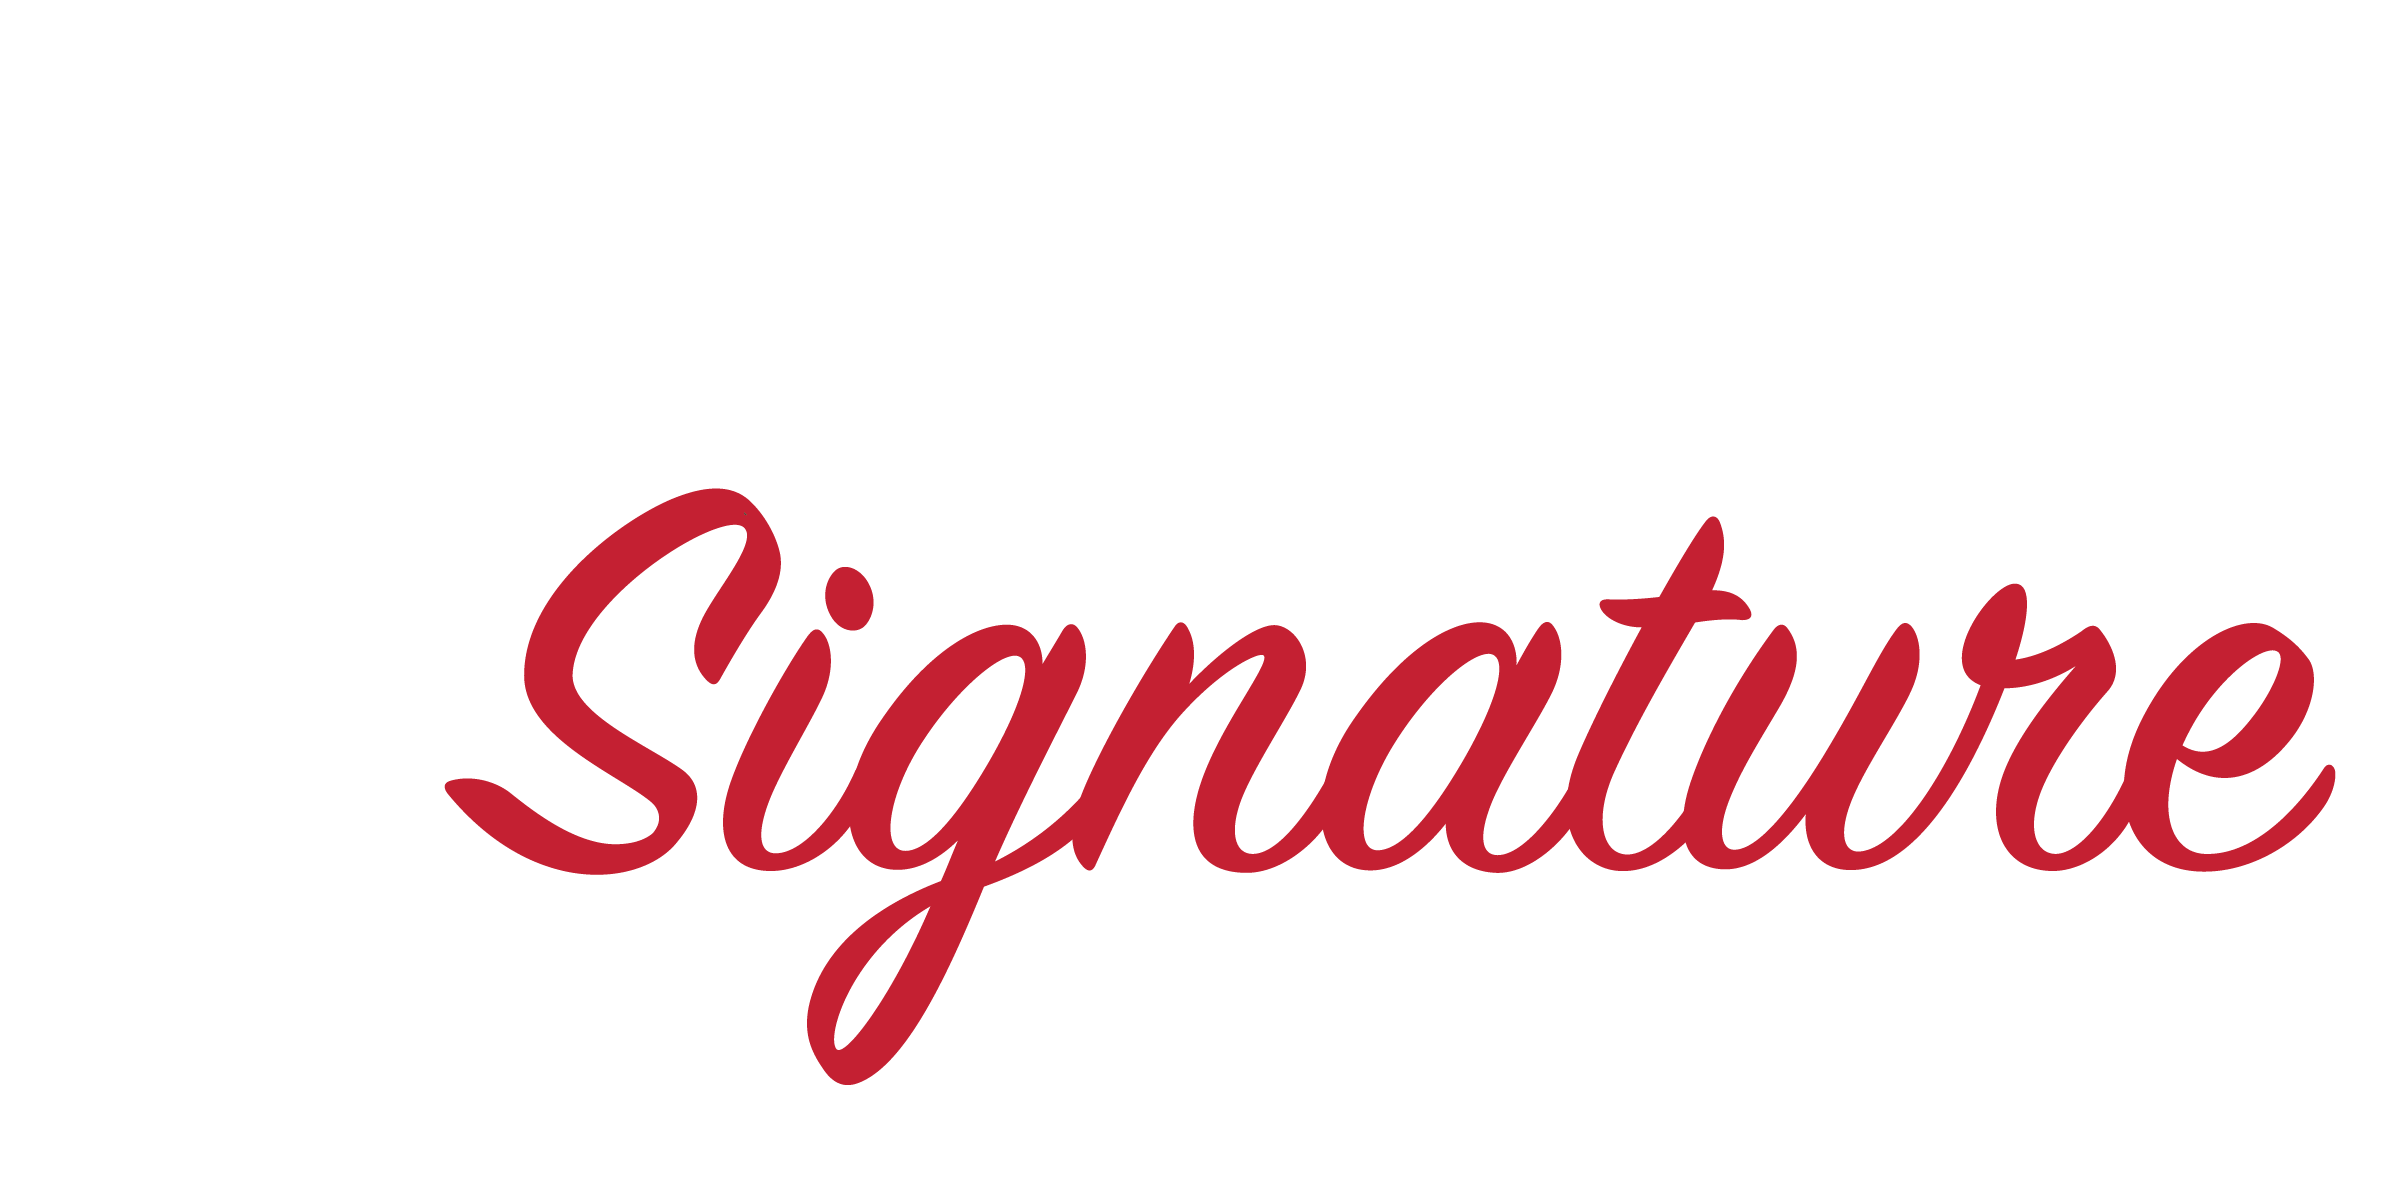 Senior Signature logo